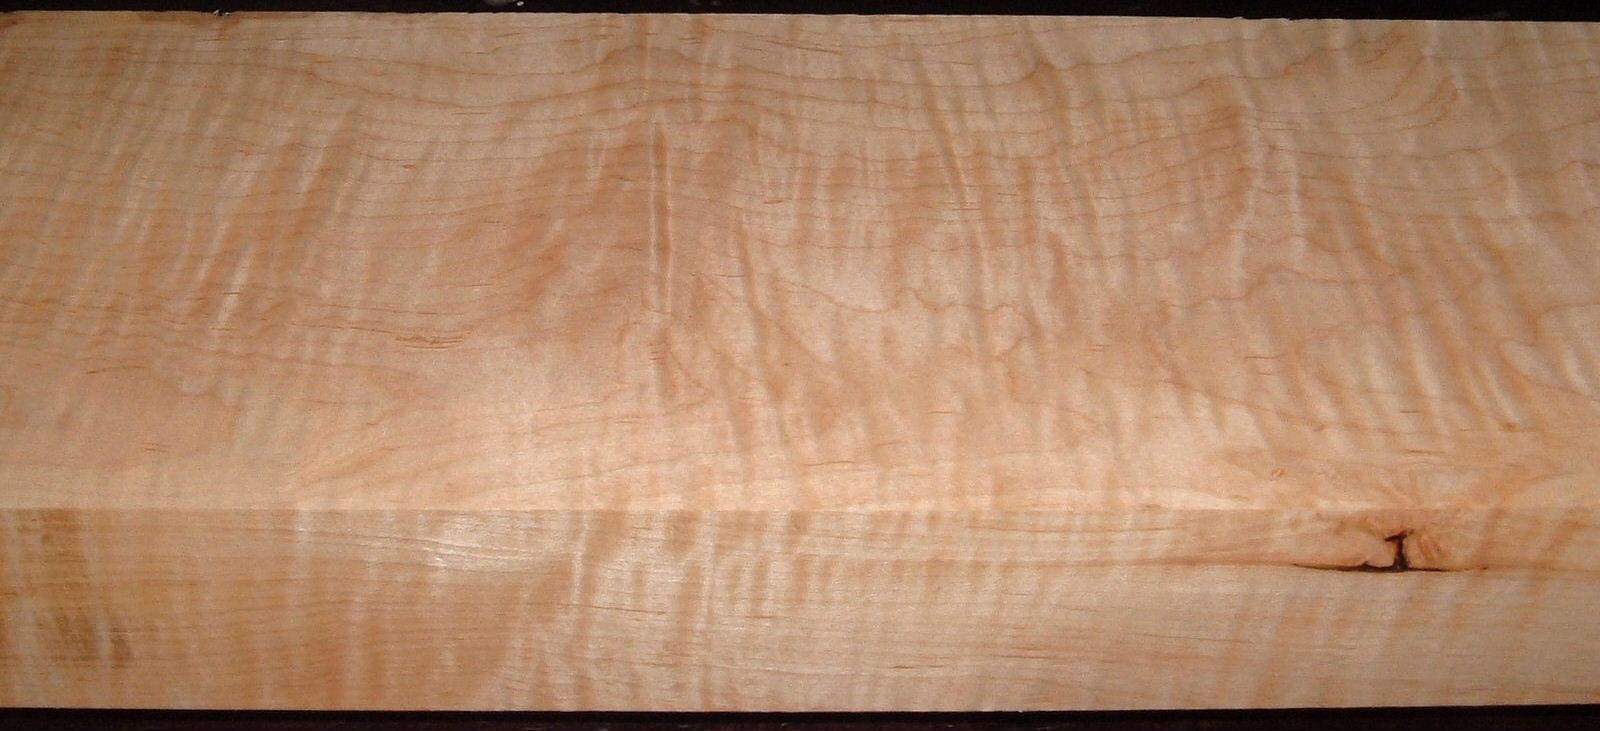 M2005-439, 2-3/4x7-1/4x60, Curly Tiger Maple